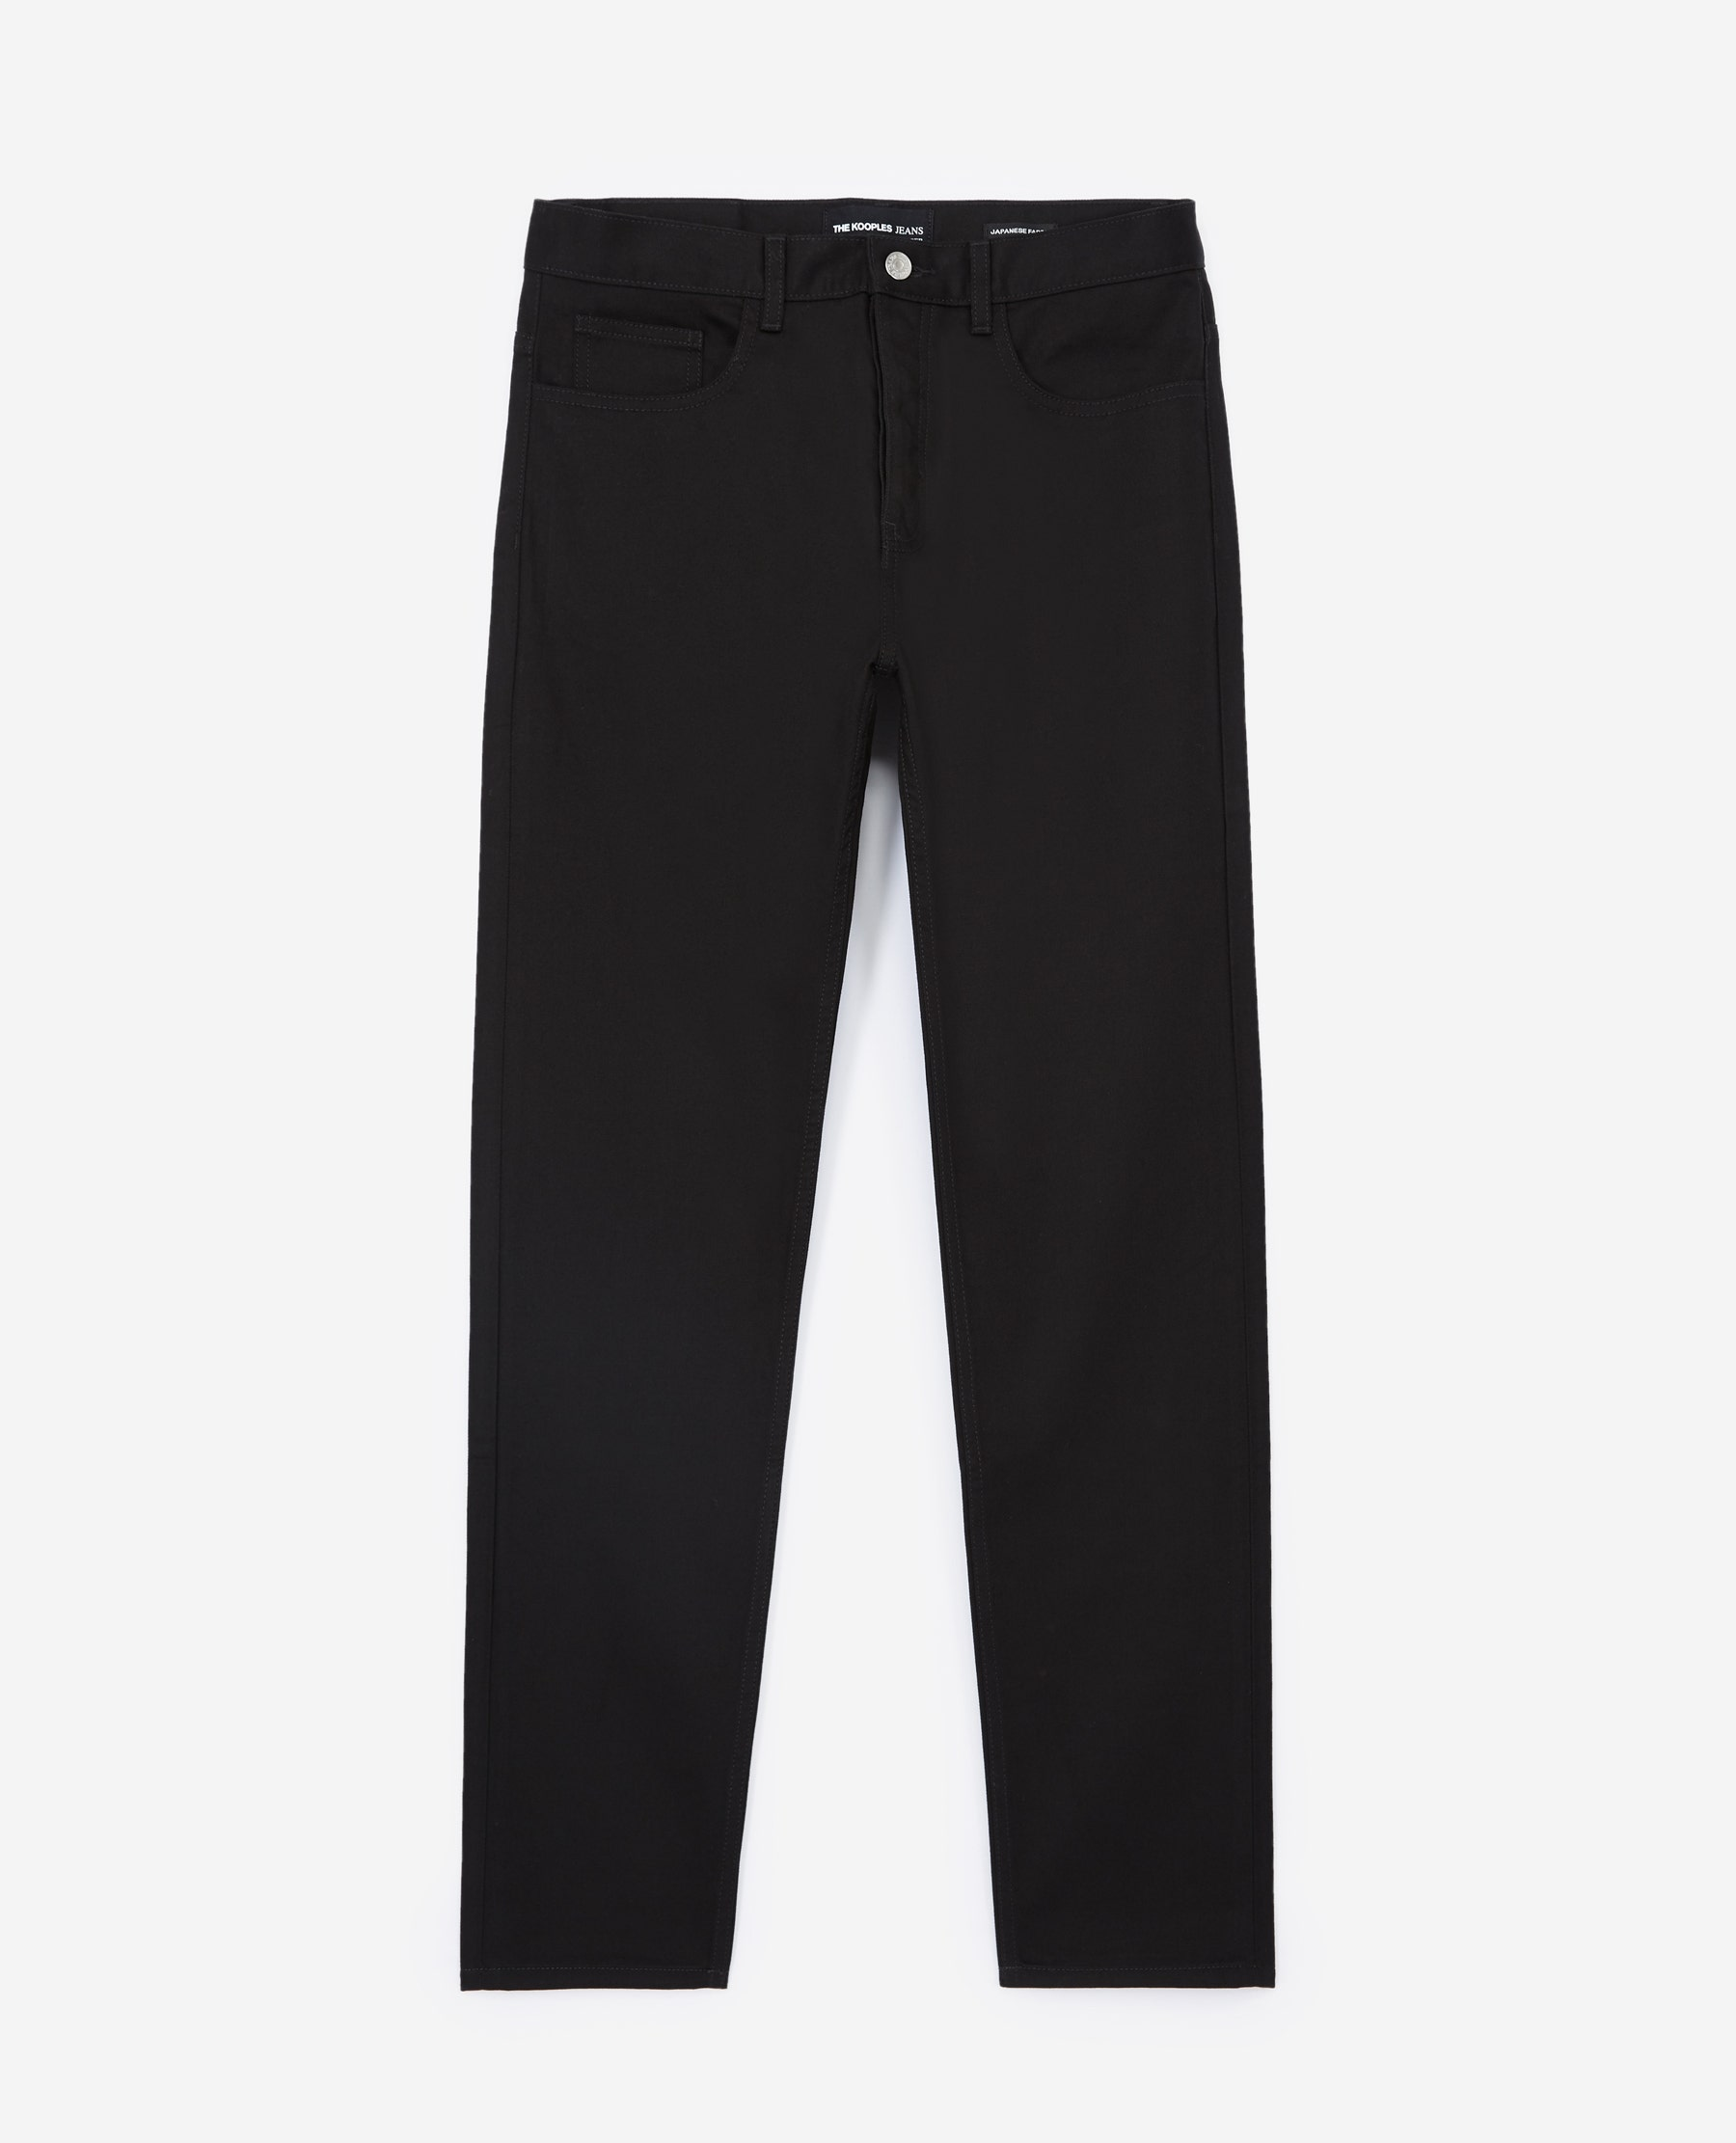 Jean noir brut coupe slim taper - The Kooples - Modalova